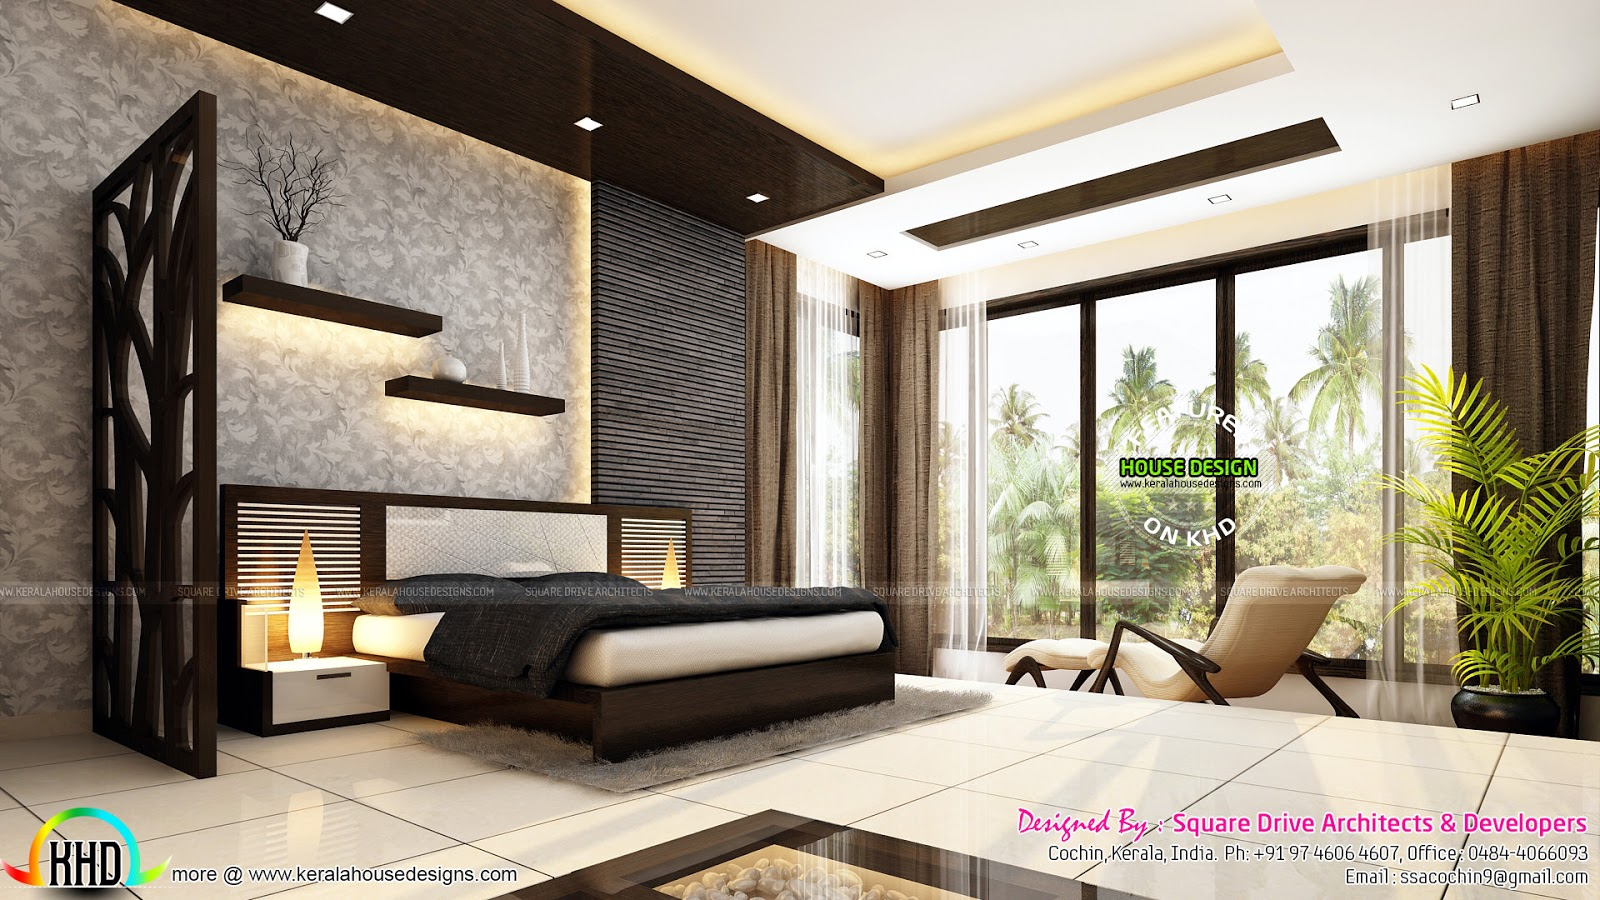 Very beautiful modern interior designs kerala home for Interior designs for bed rooms